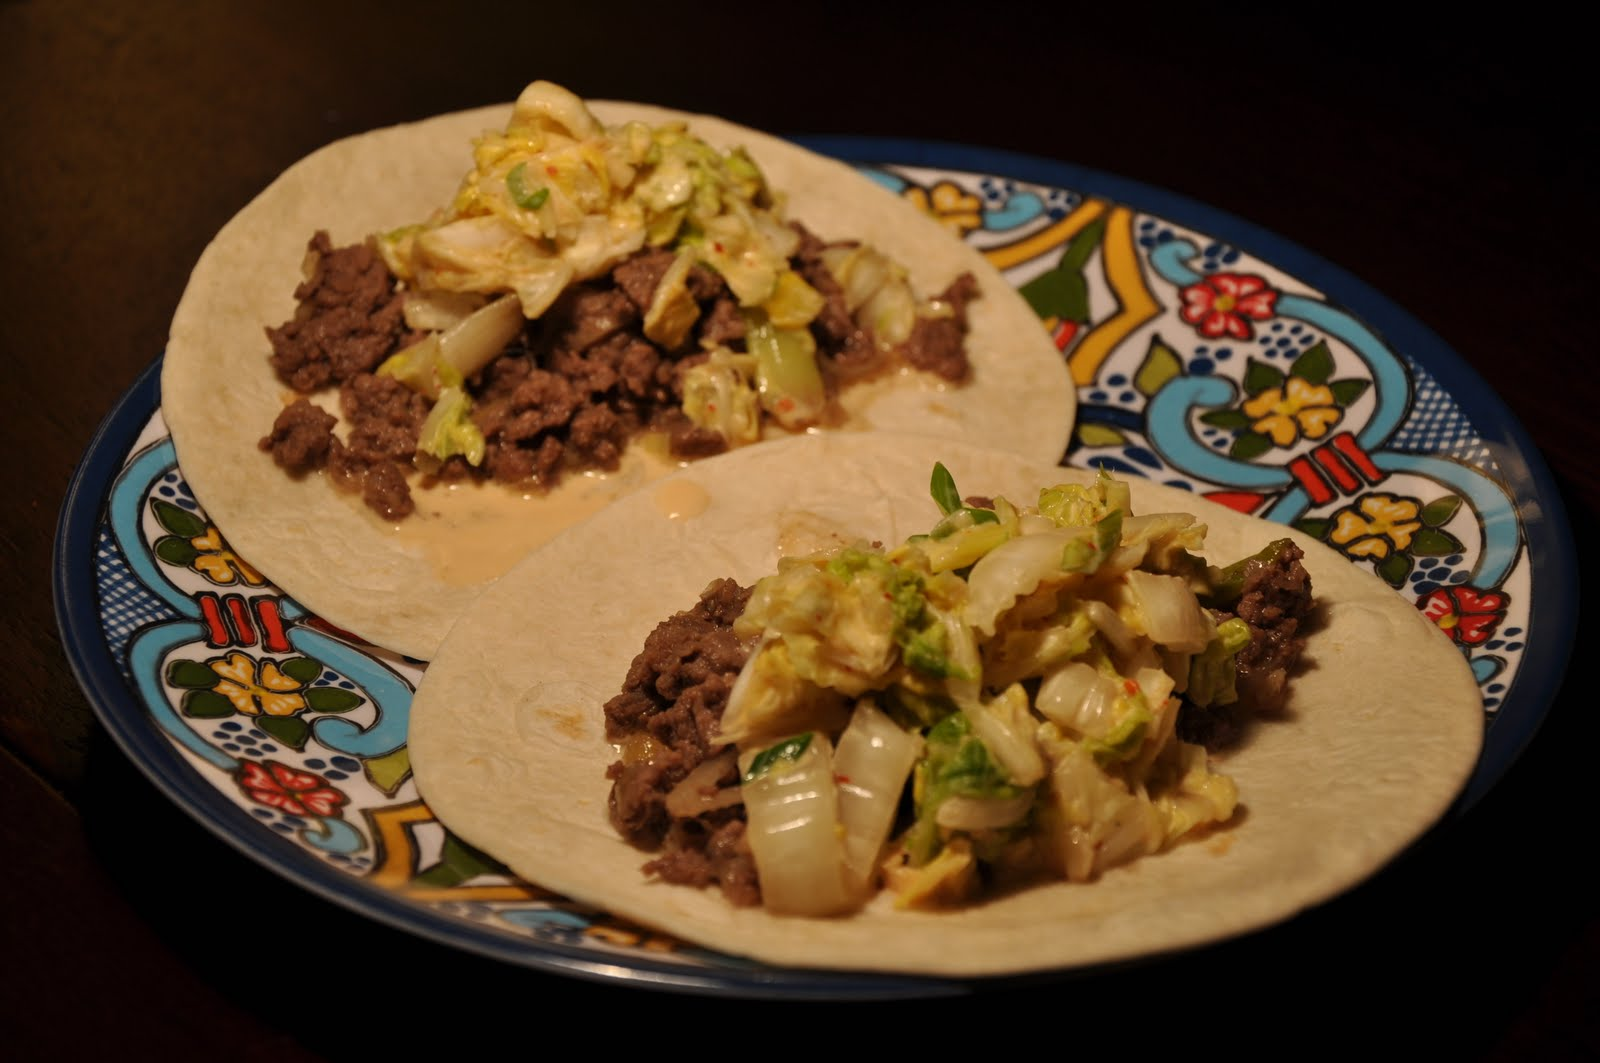 Kogi-Inspired Bulgogi Tacos With Spicy Slaw Recipe — Dishmaps